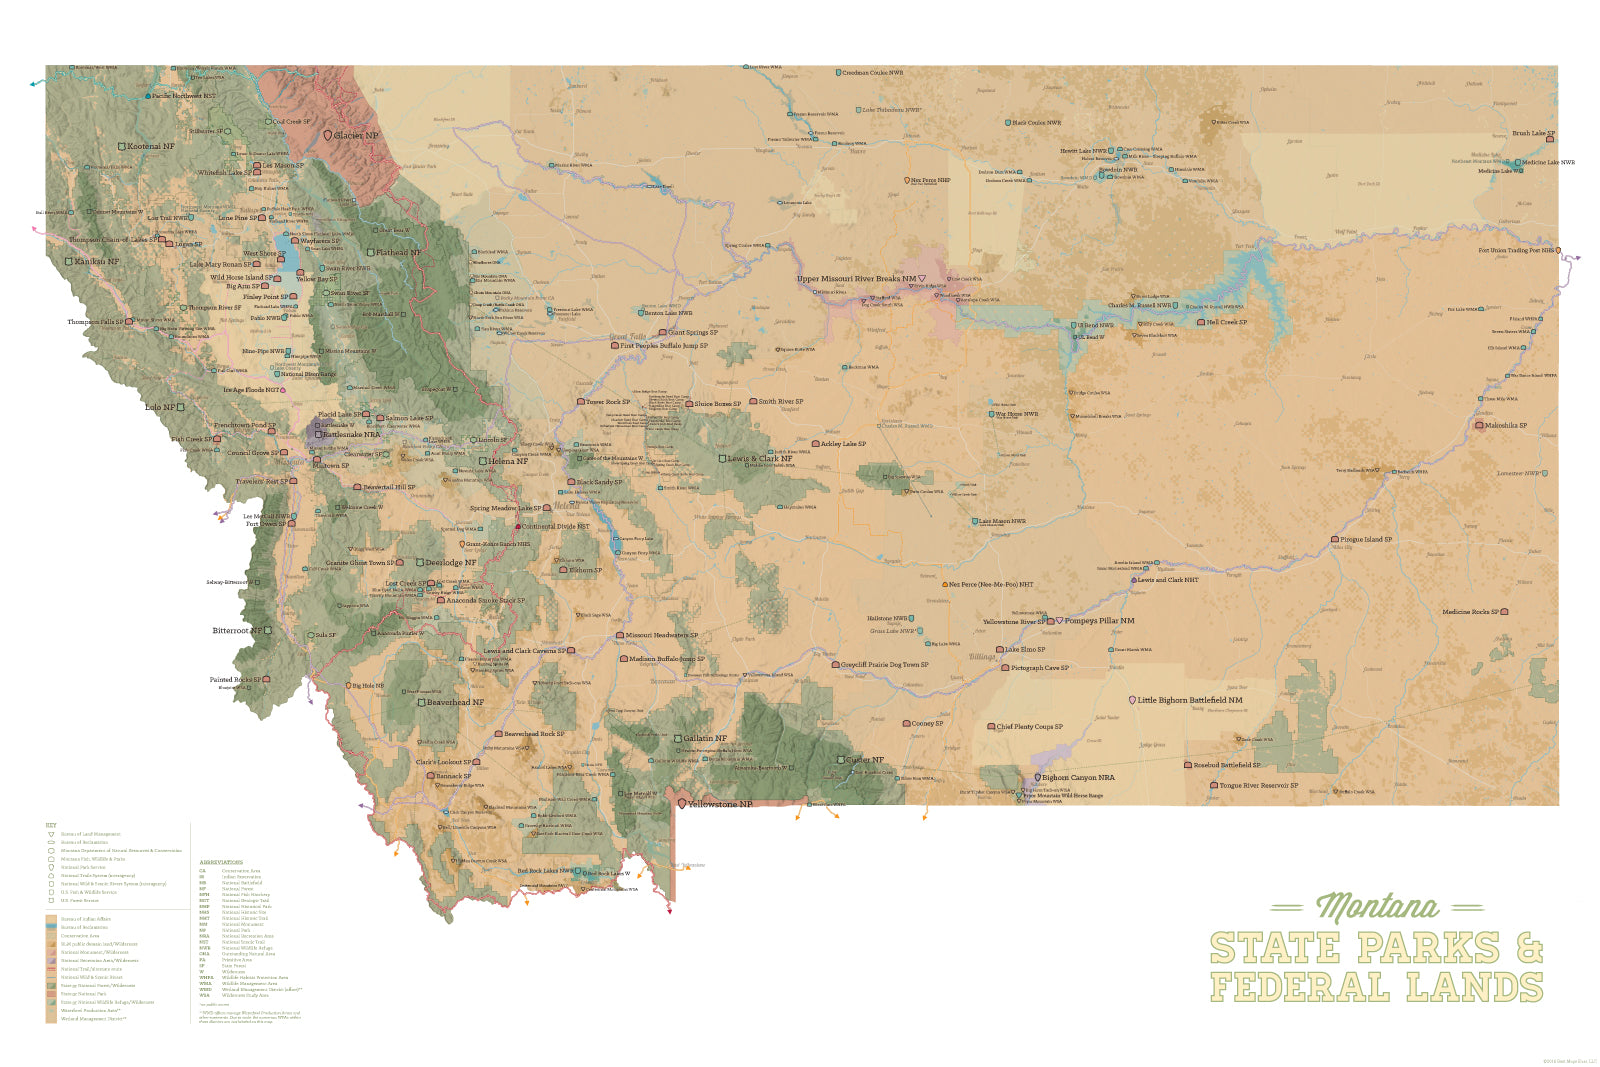 Montana State Parks & Federal Lands Map 24x36 Poster - Best Maps Ever